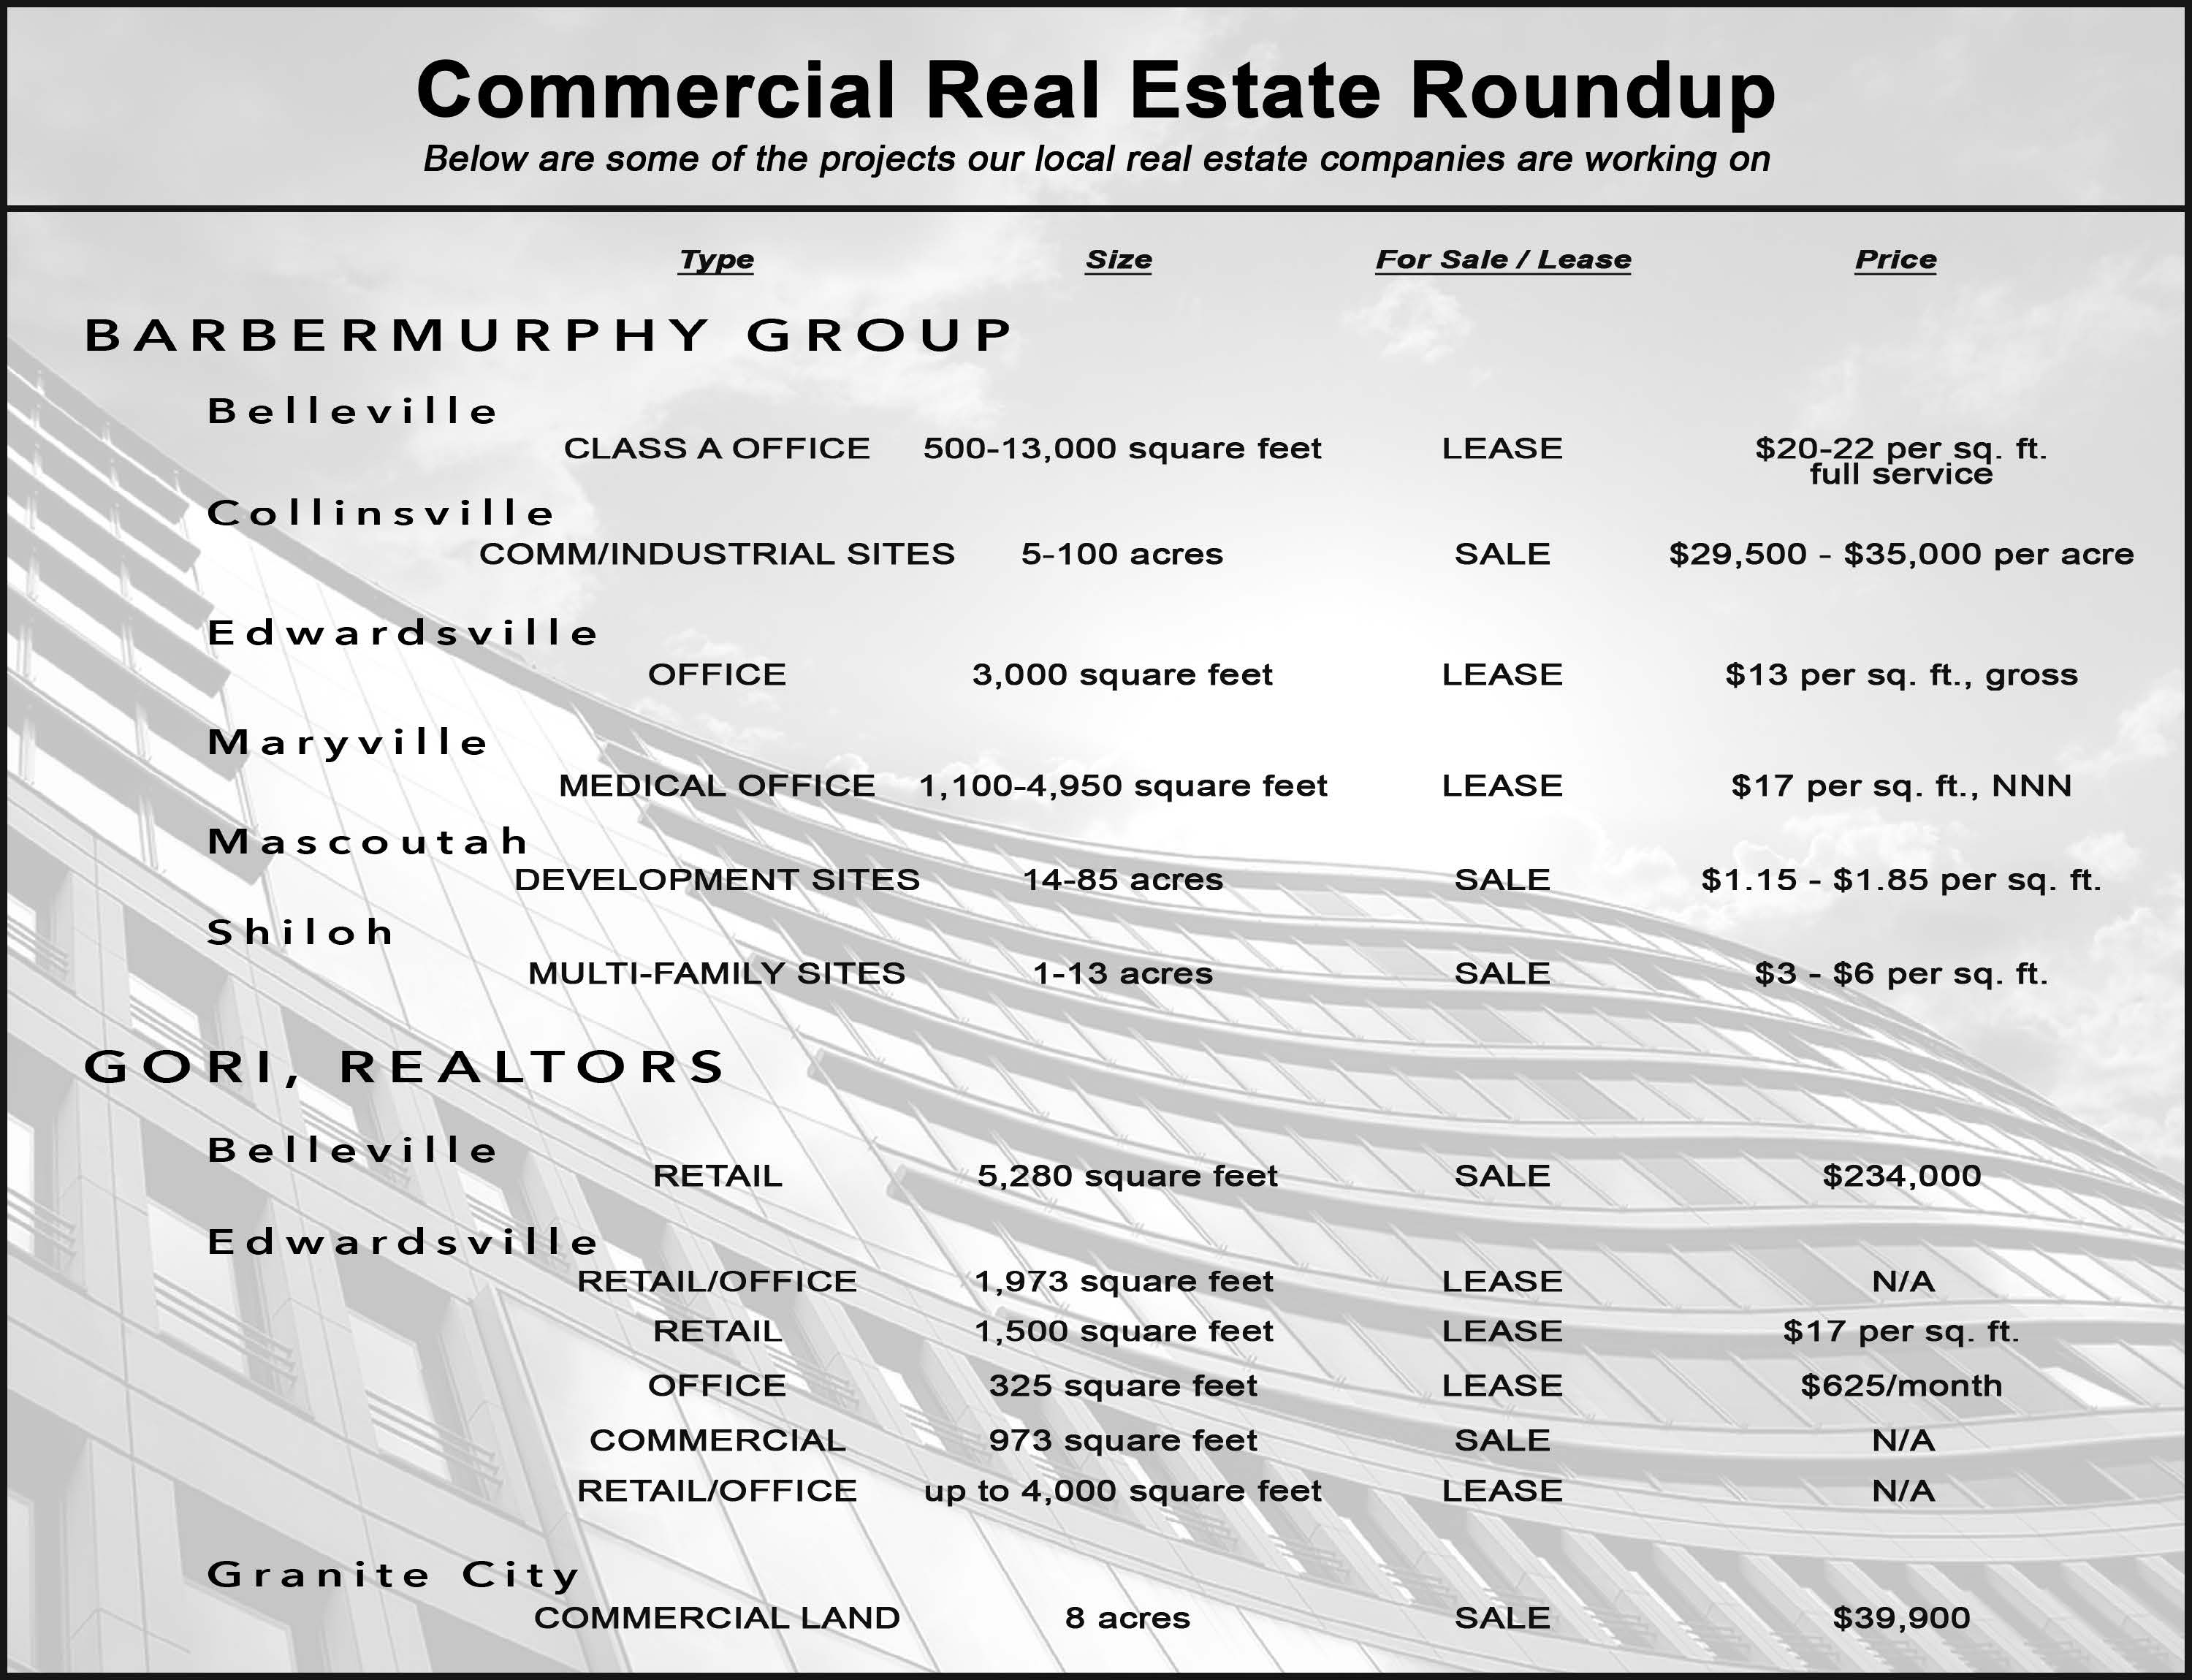 p15 commercial real estate roundup